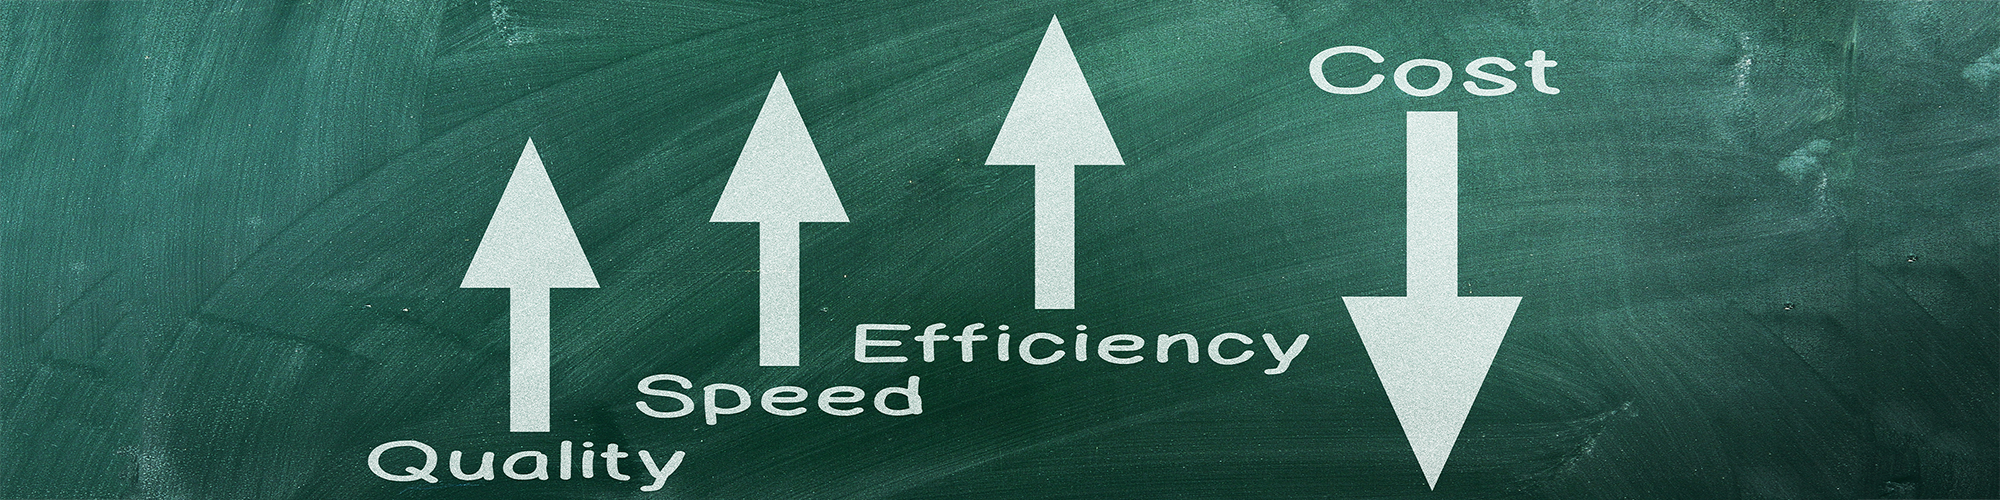 How to increase efficiency, productivity and net profit in a private practice